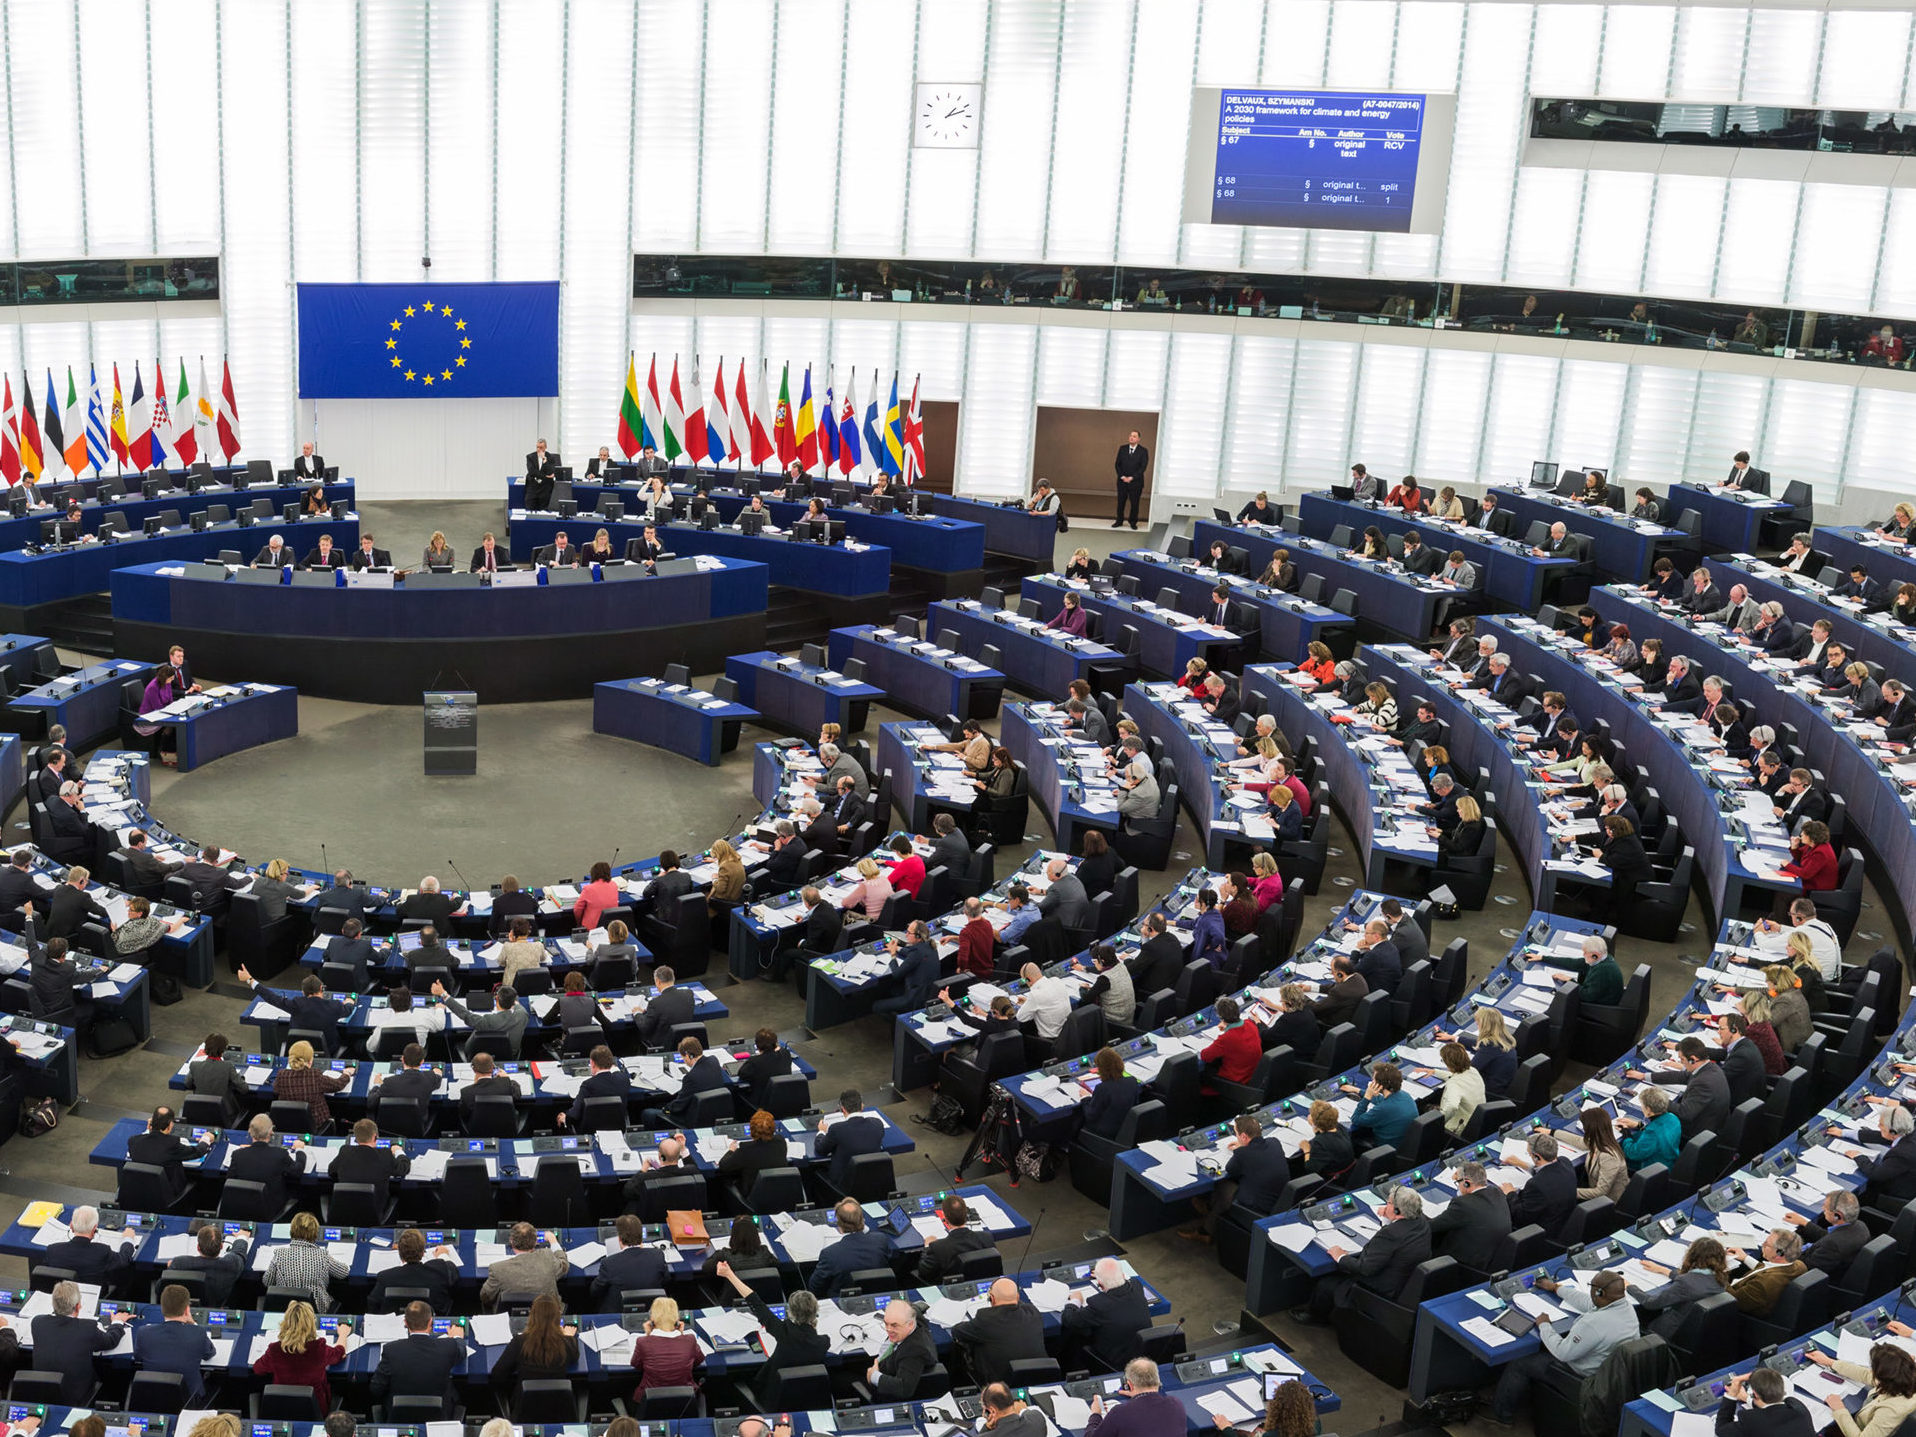 More than 200 publishing and music organizations, including Reuters and the Press Association, call on EU to adopt new copyright laws